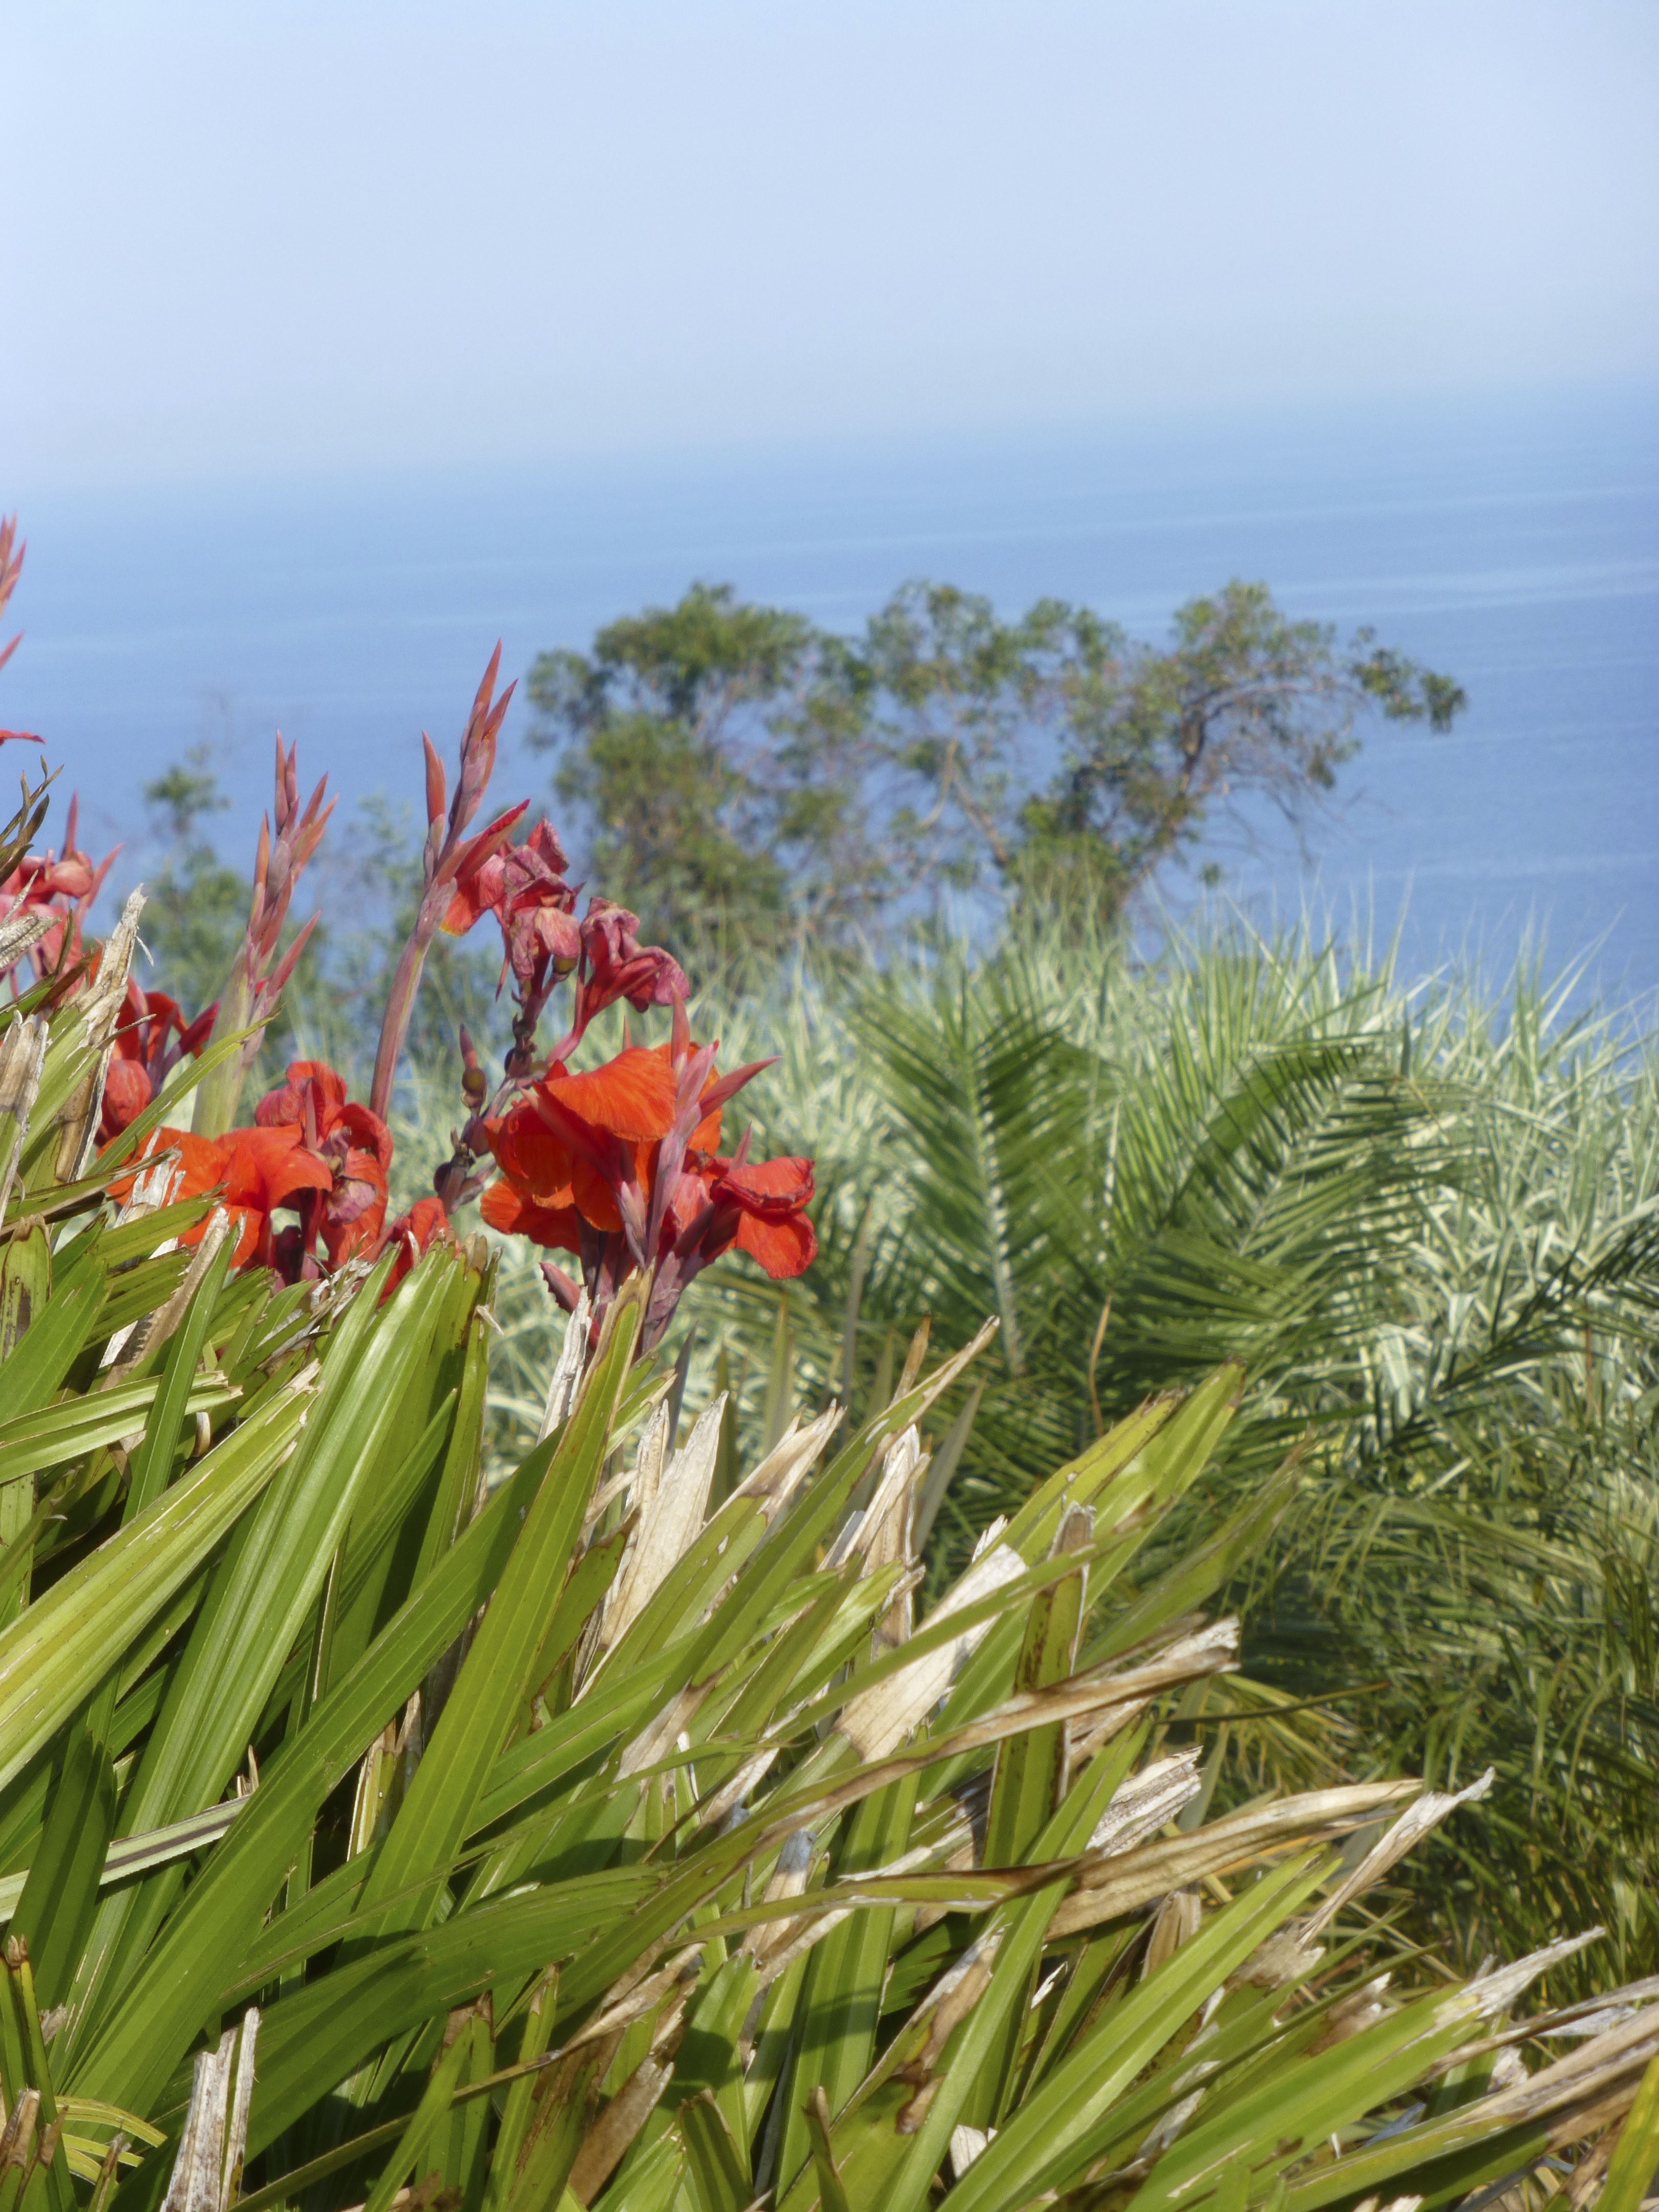 CAP ROIG BOTANICAL GARDEN, Spain